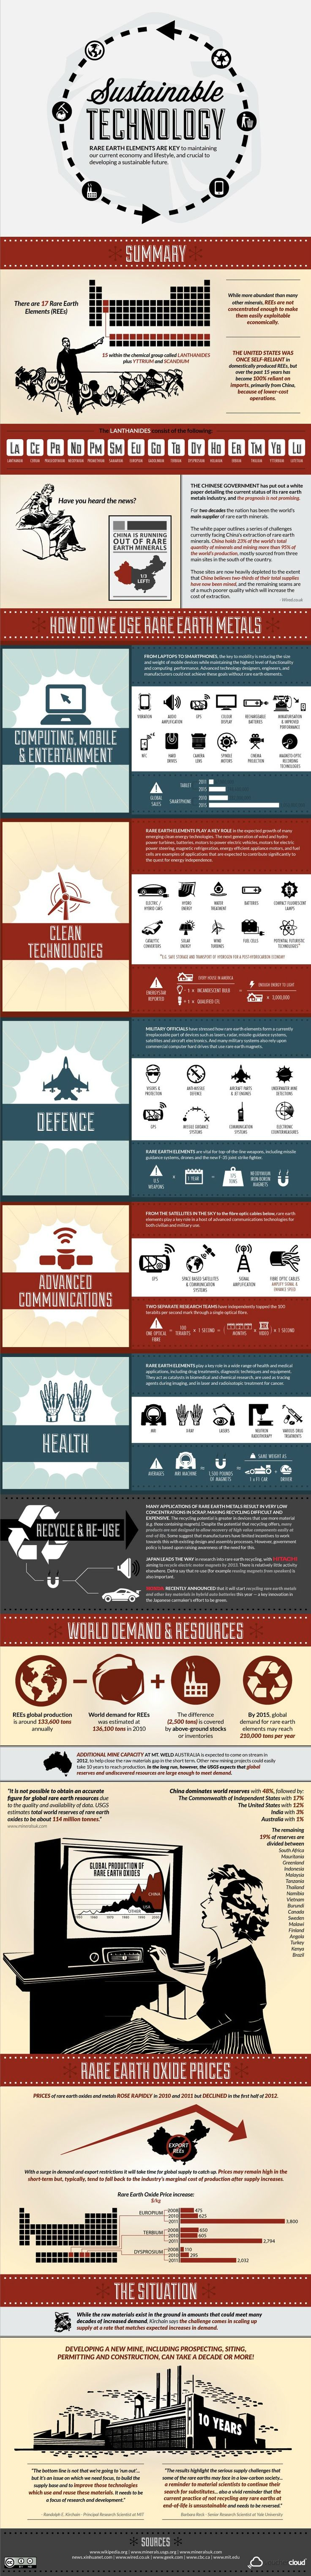 171 best infographic images on pinterest info graphics business our iphones are depleting the earths resources infographic fandeluxe Choice Image